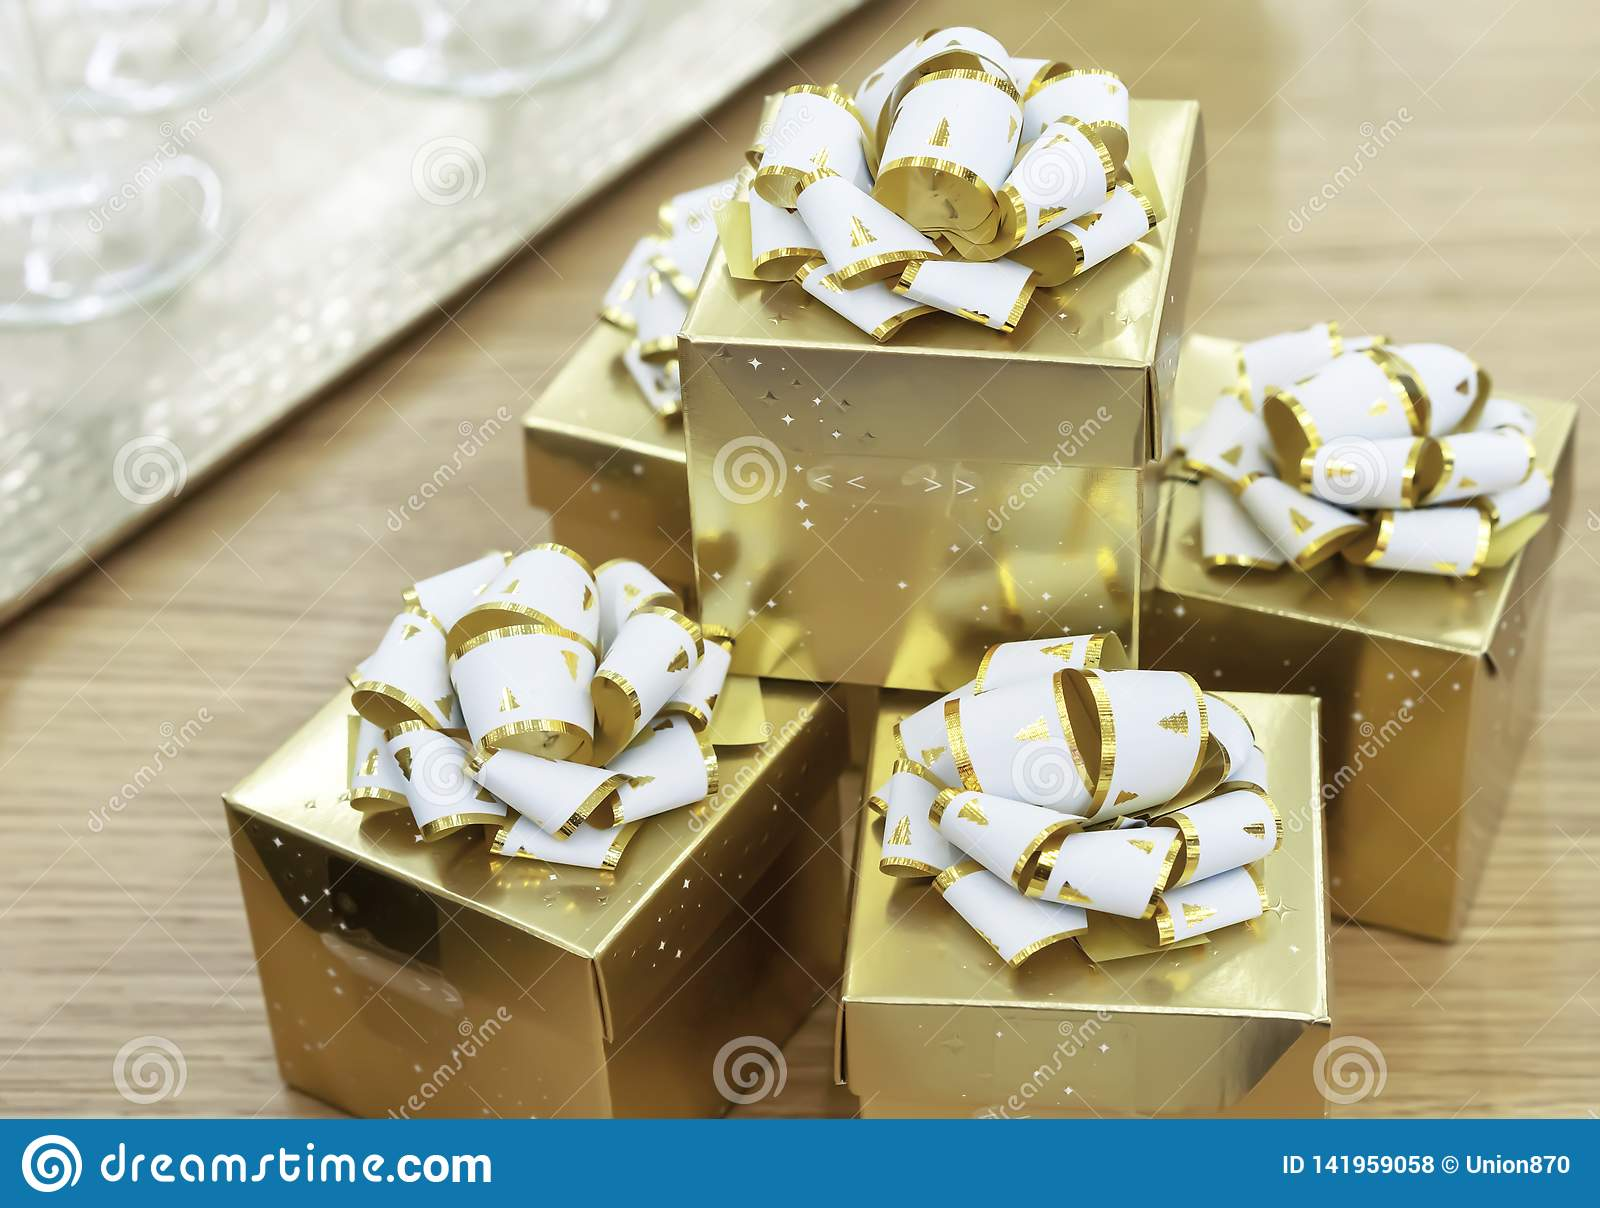 Golden gift boxes with white bows on a wooden table